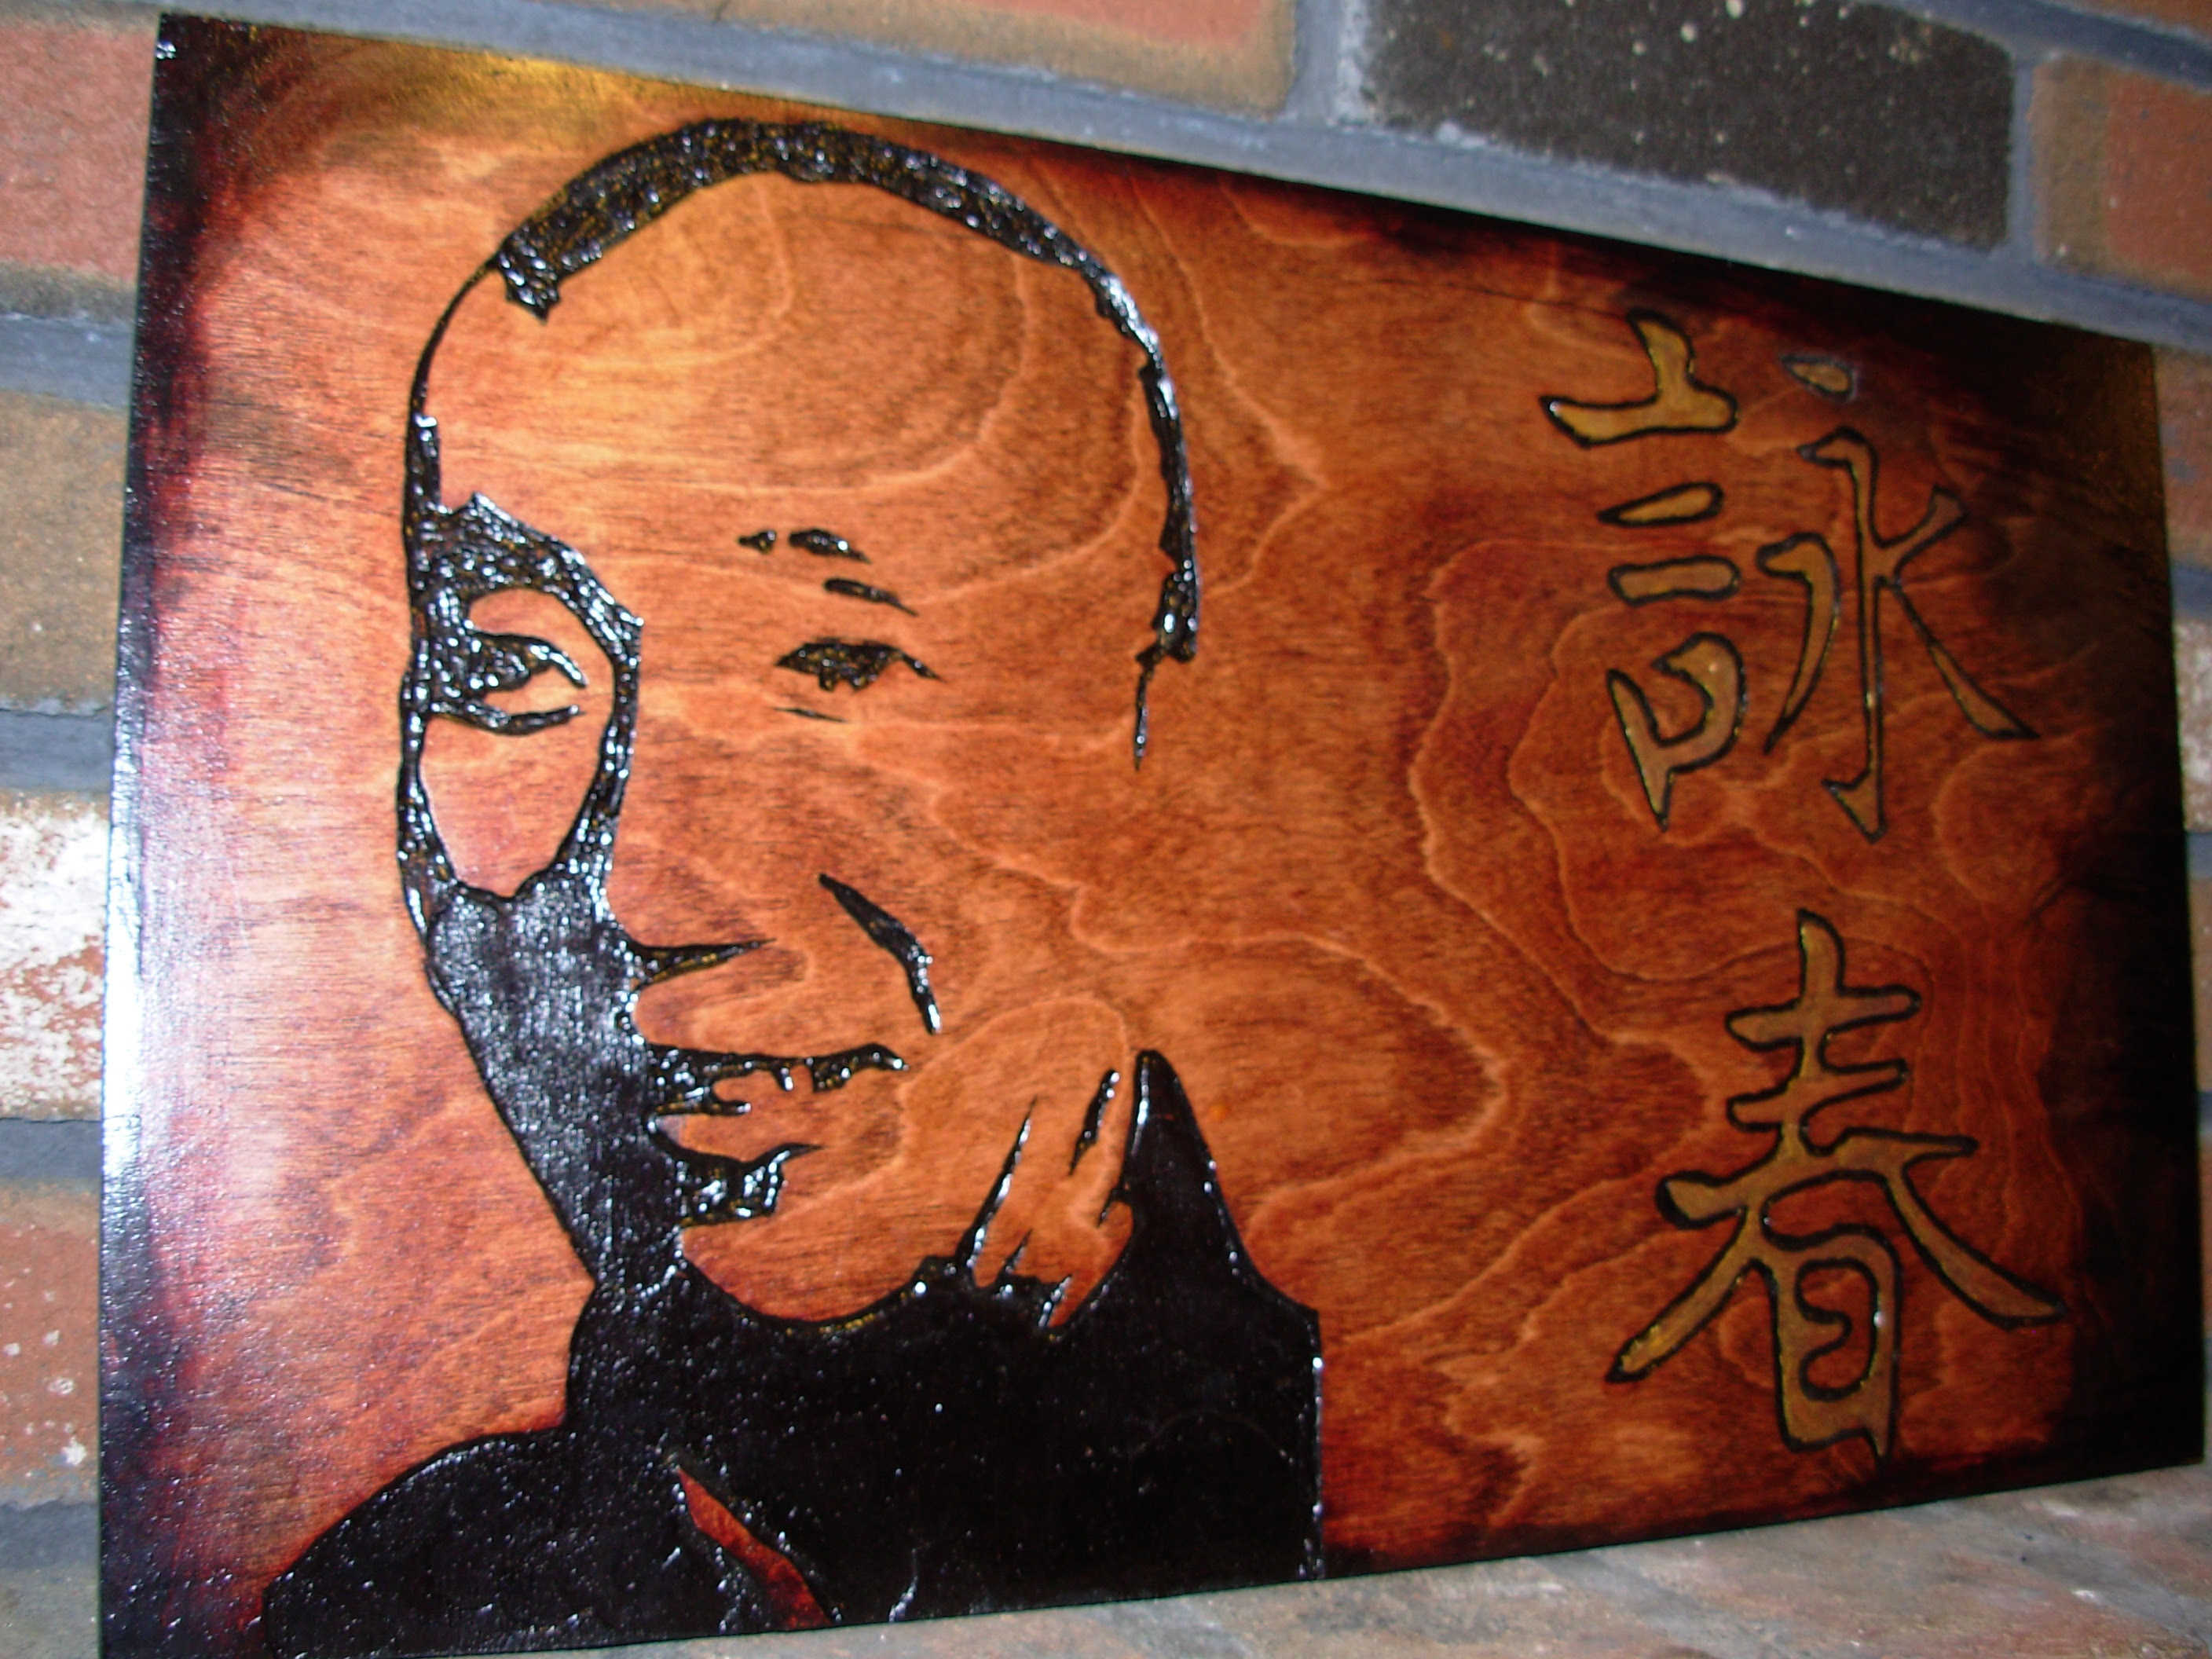 Wing Chun Ip Man Store Plaques Collectibles